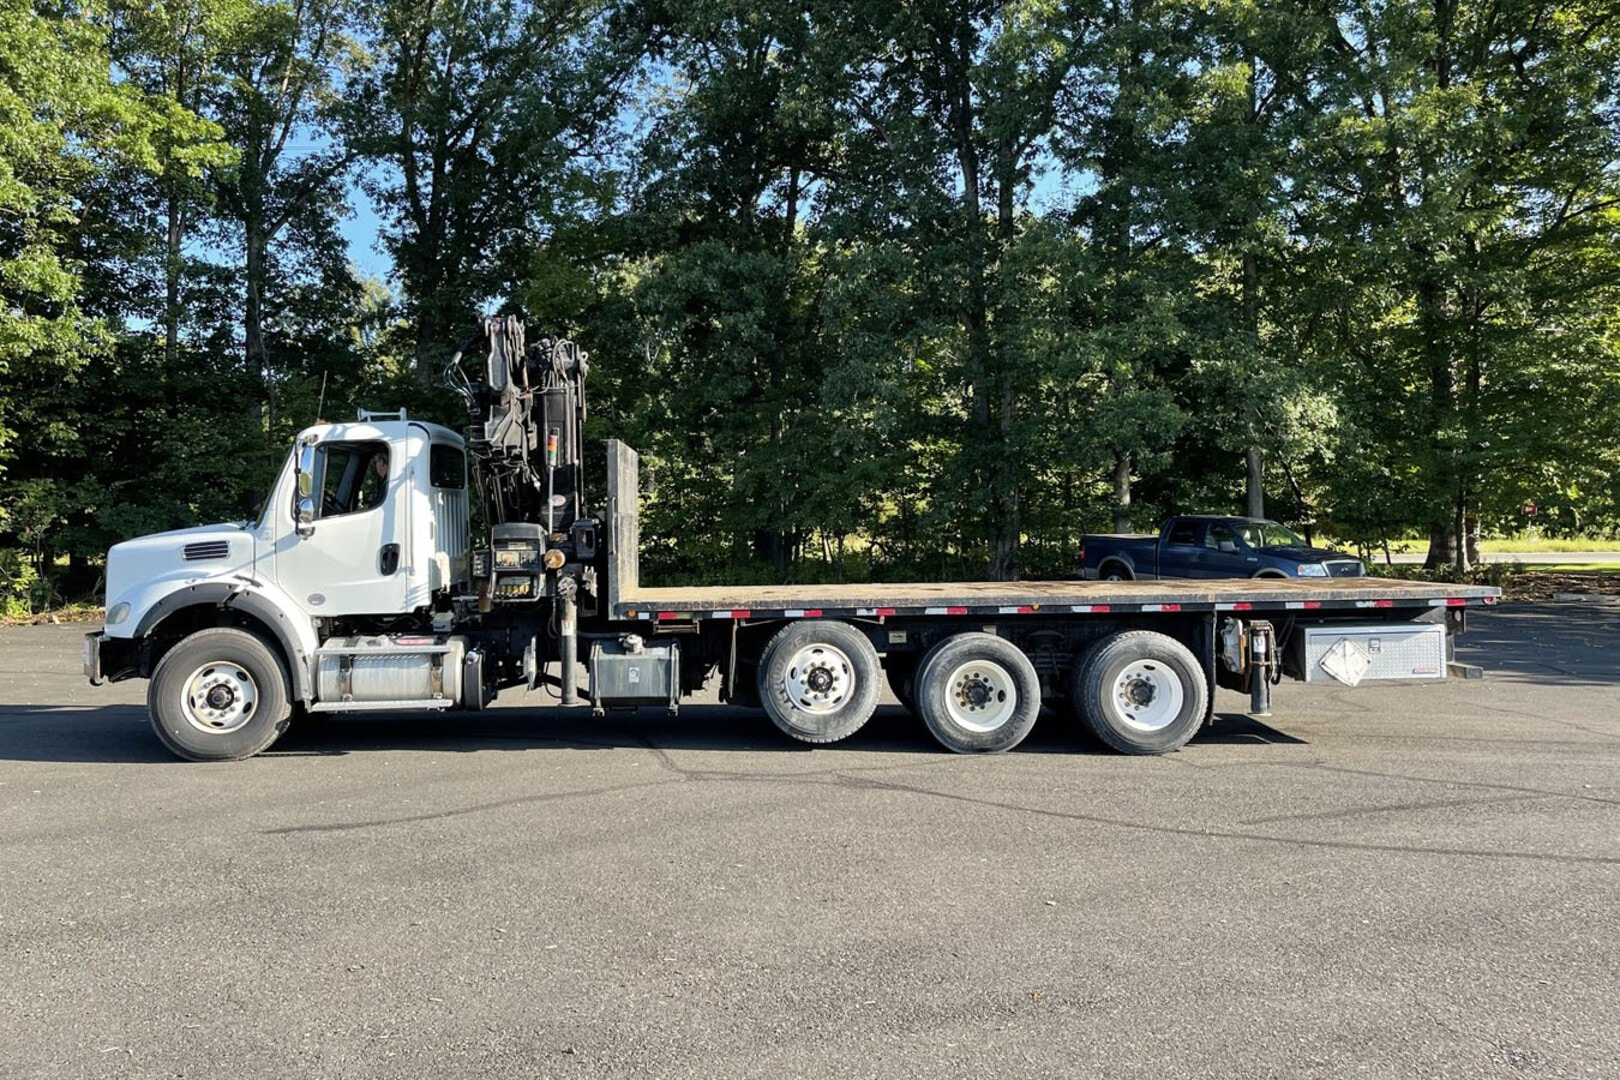 Used, 2013, Other, FREIGHTLINER M2-112 W/ 2006 HIAB 322E-5: 10 TON KNUCKLEBOOM TRUCK, Other